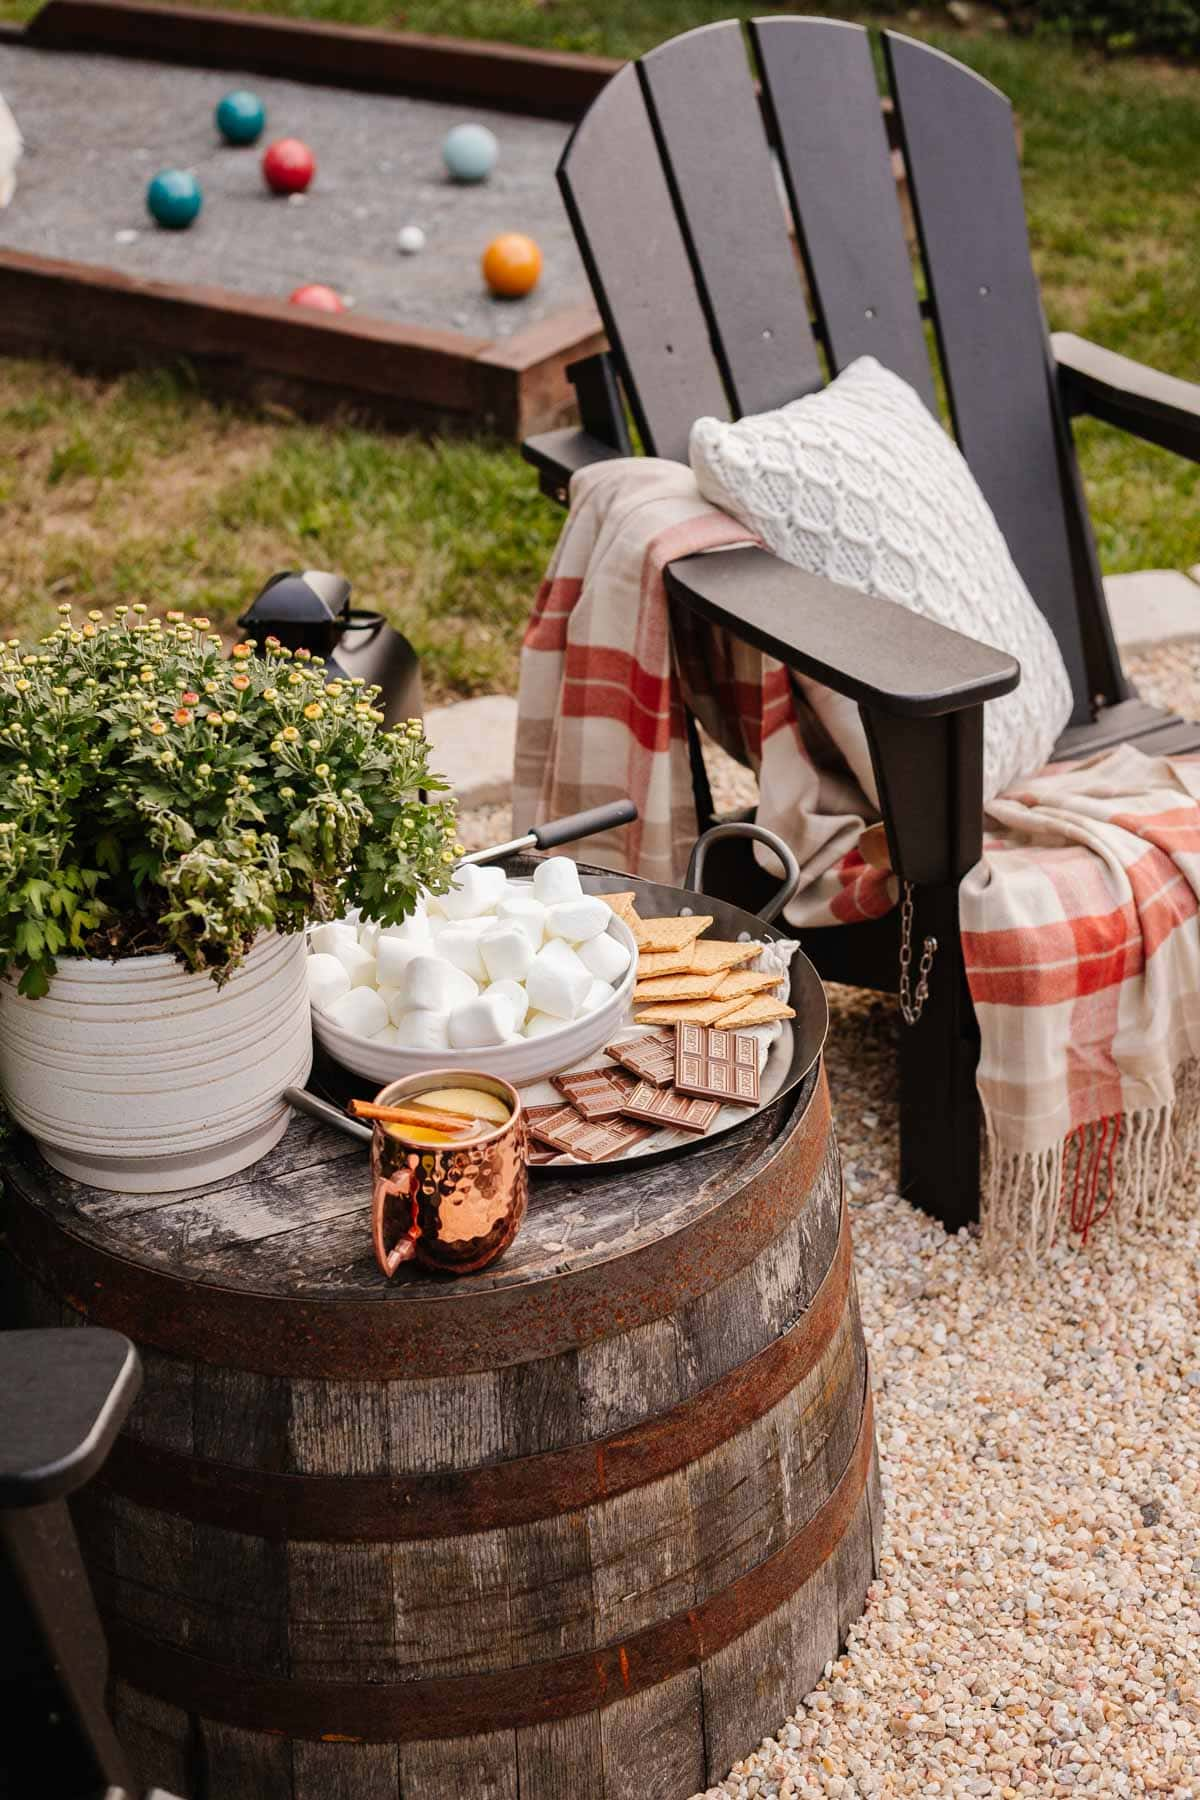 fire pit ideas - s'mores station for a backyard party